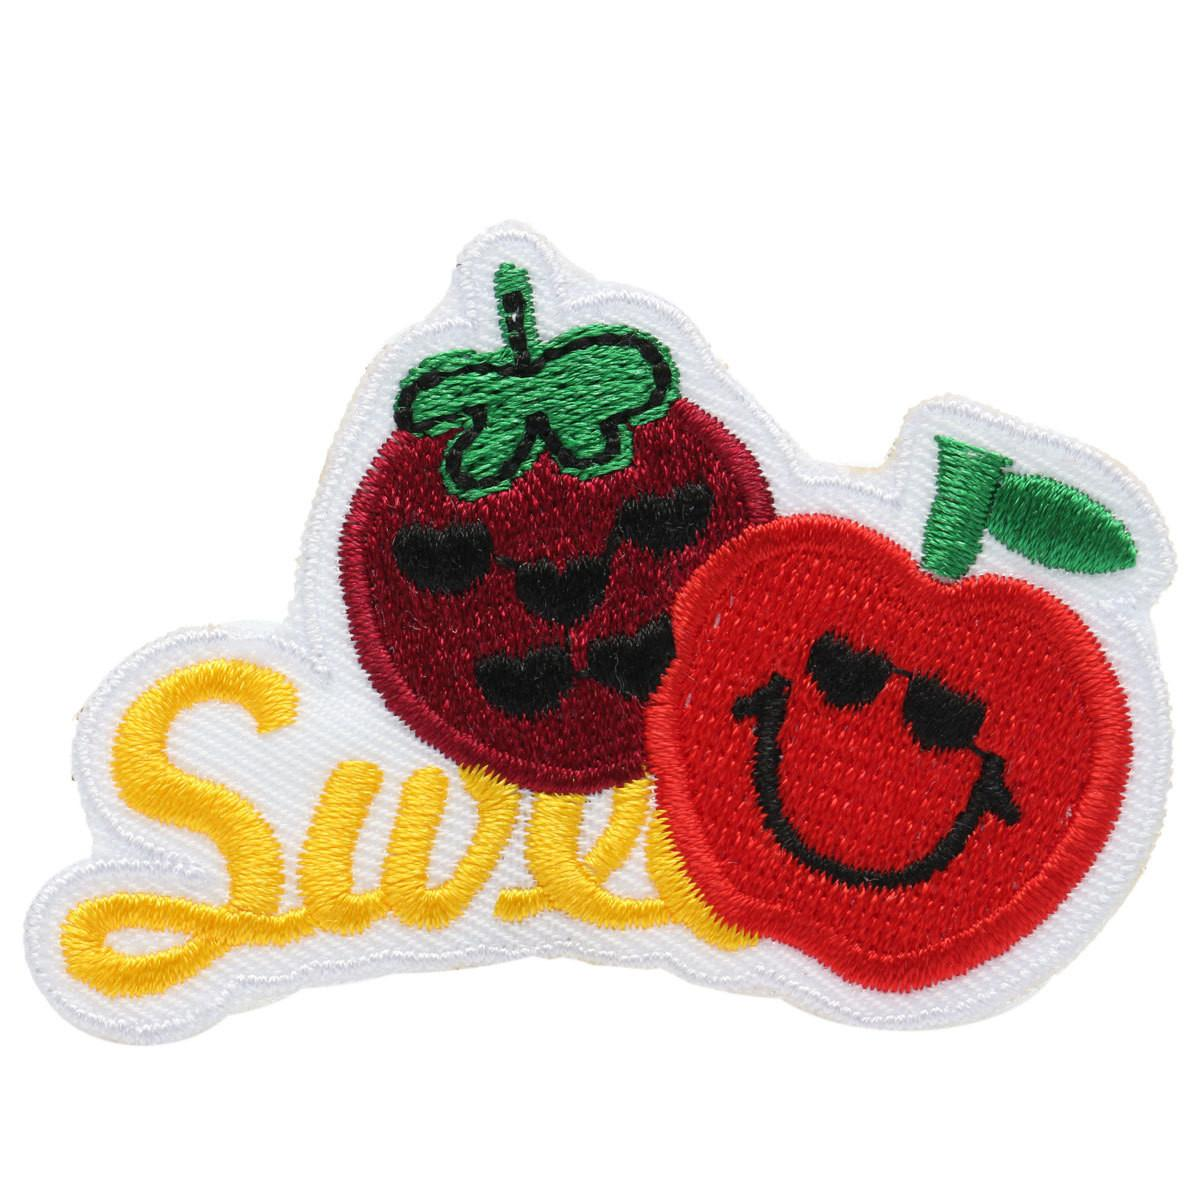 Fruits Personalized Embroidery Diy Fabric Sticker Patch